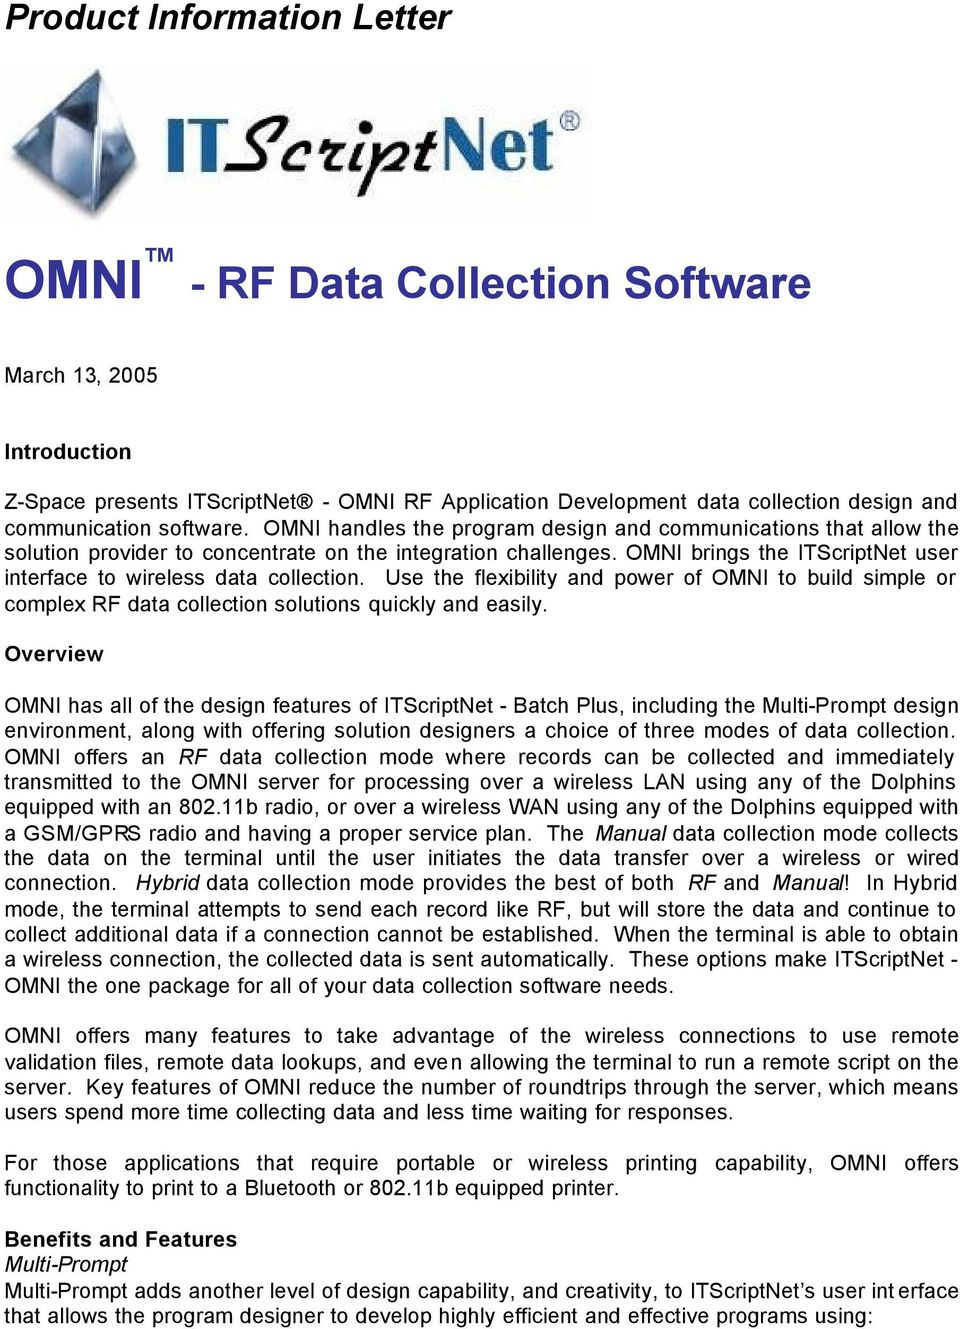 OMNI brings the ITScriptNet user interface to wireless data collection. Use the flexibility and power of OMNI to build simple or complex RF data collection solutions quickly and easily.